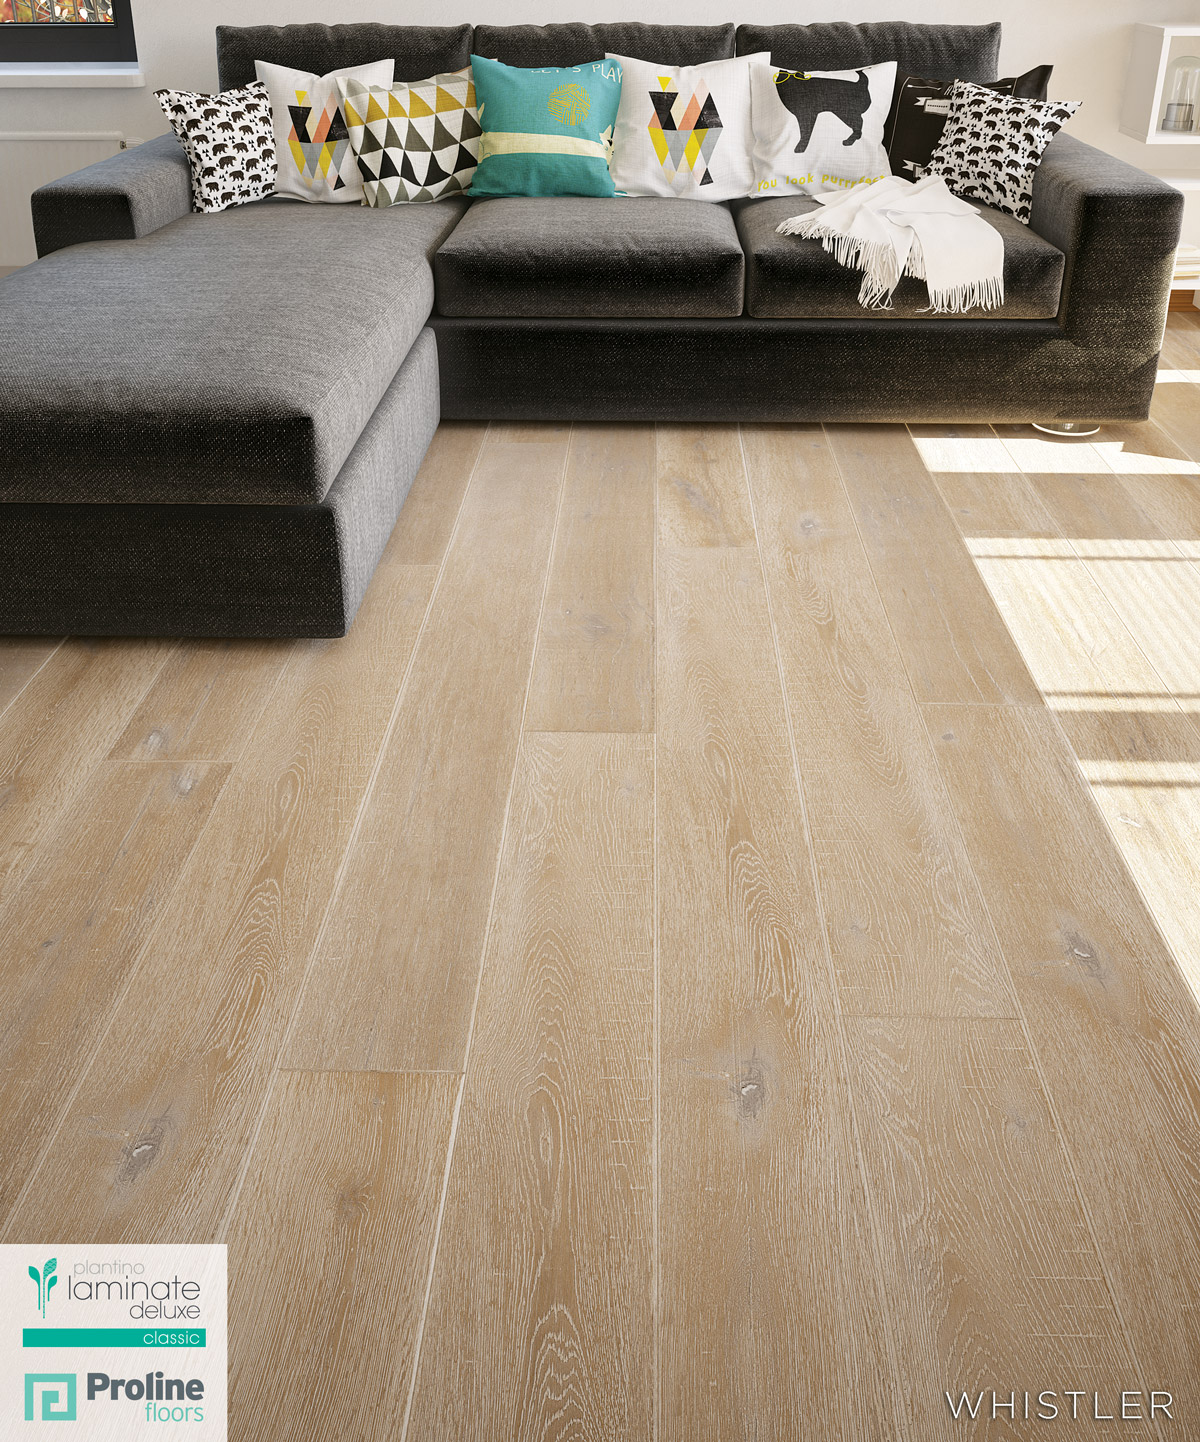 Plantino-Choices-laminate-12mm-Whistler